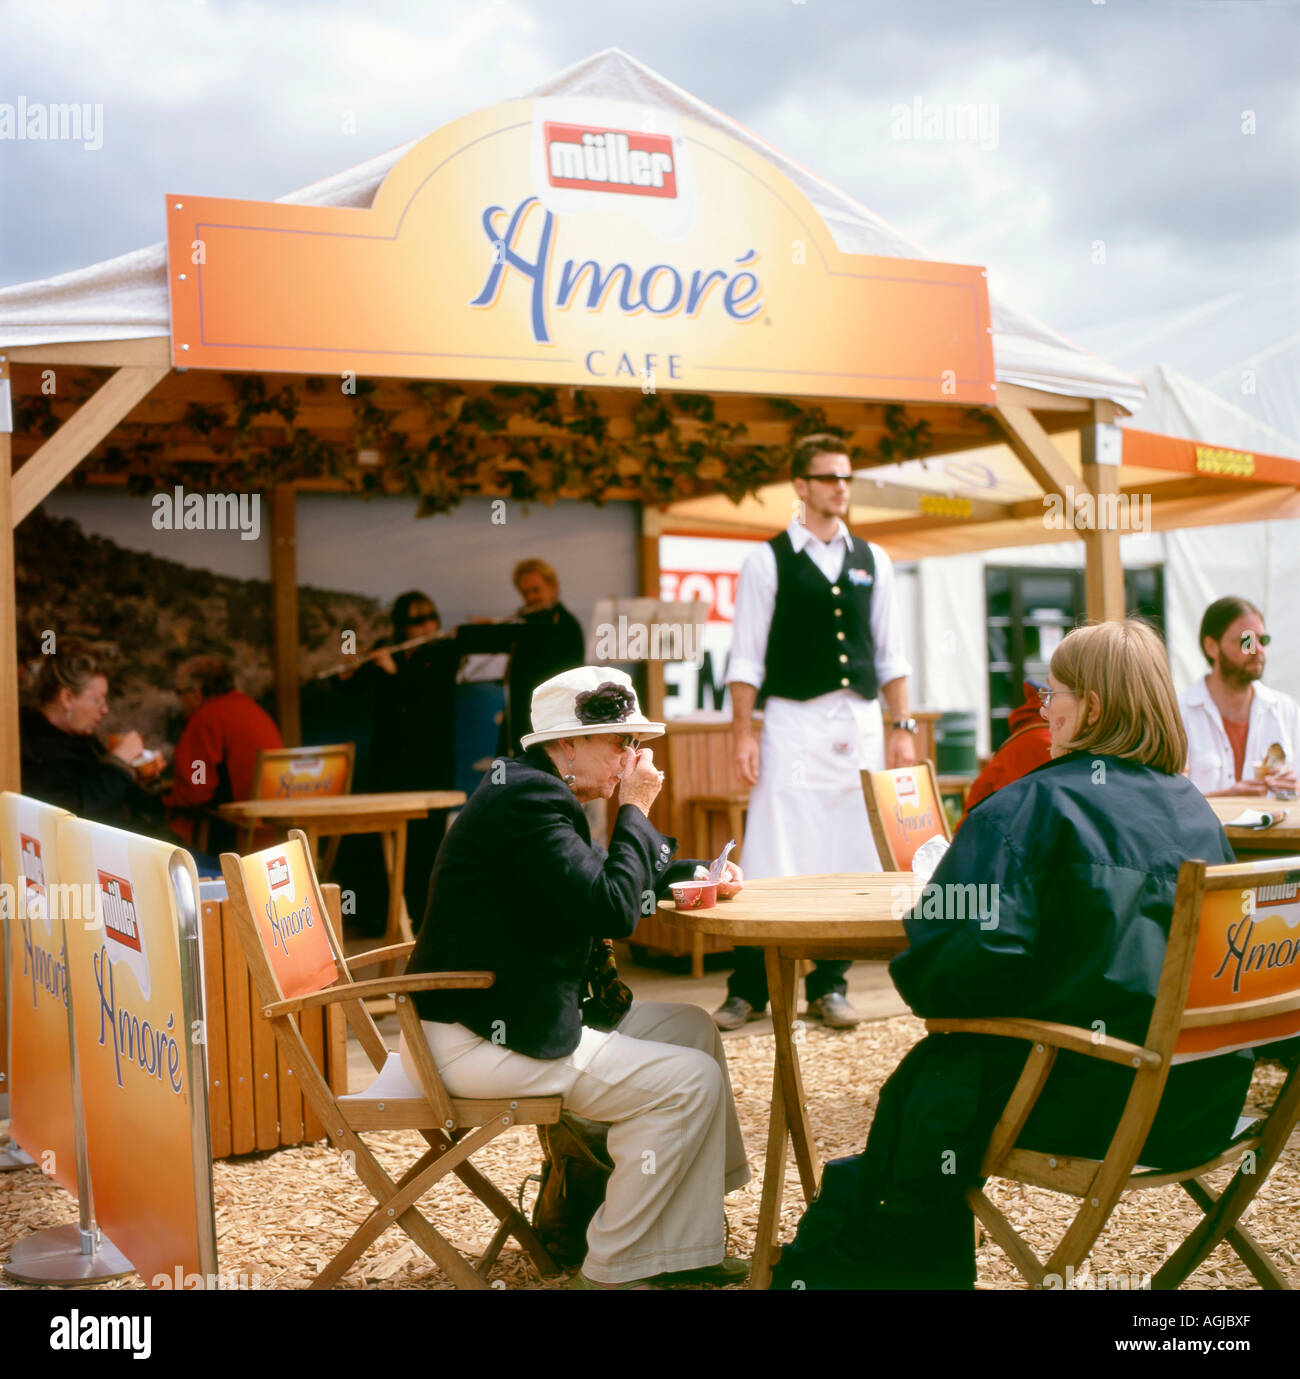 People enjoying yoghurt at the Muller Amore Cafe at the 2006 Guardian Hay Festival Hay-on-Wye, Wales UK - Stock Image